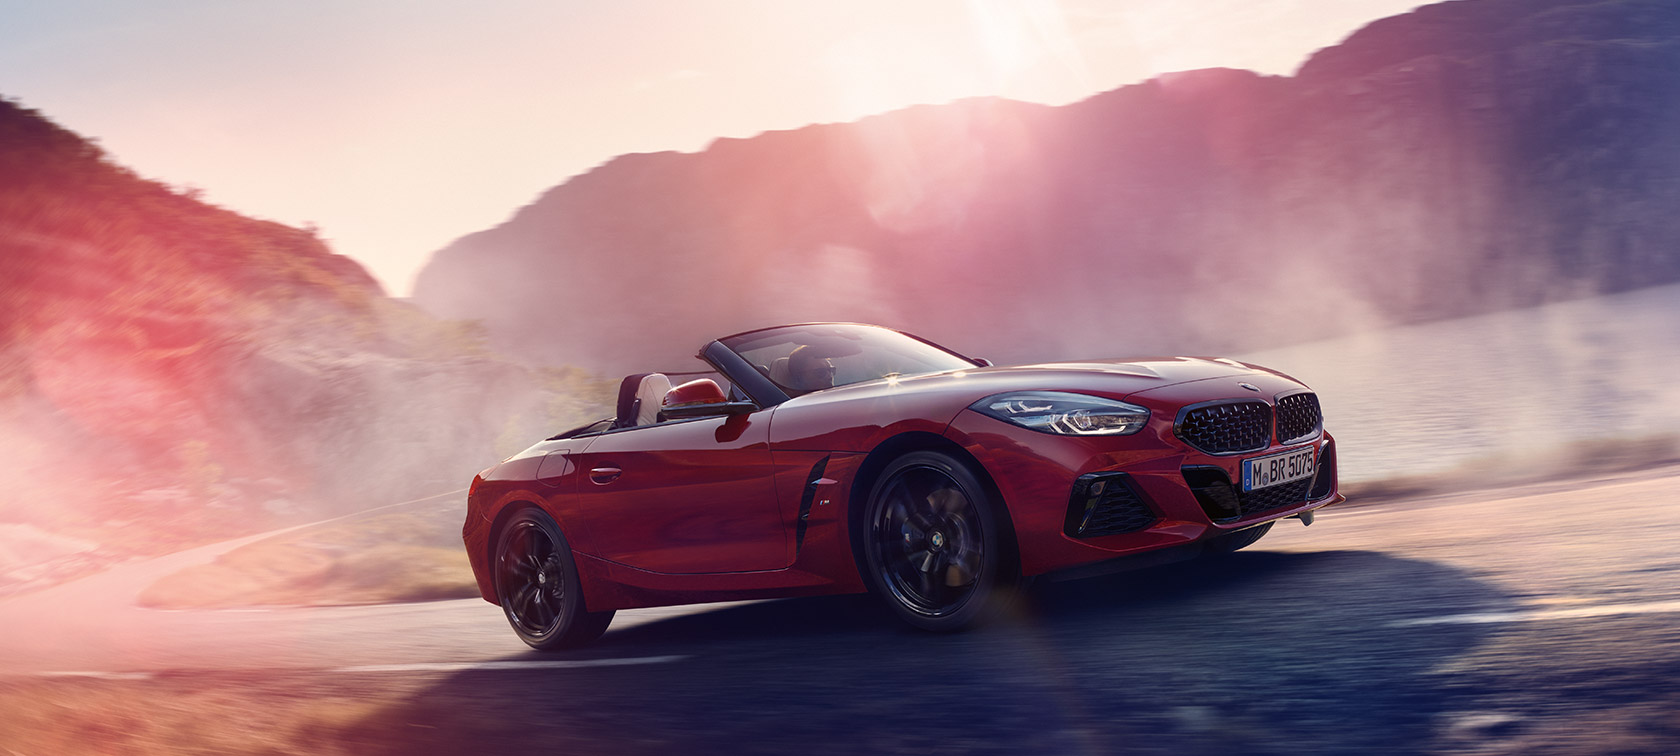 BMW Z4 Roadster on the move